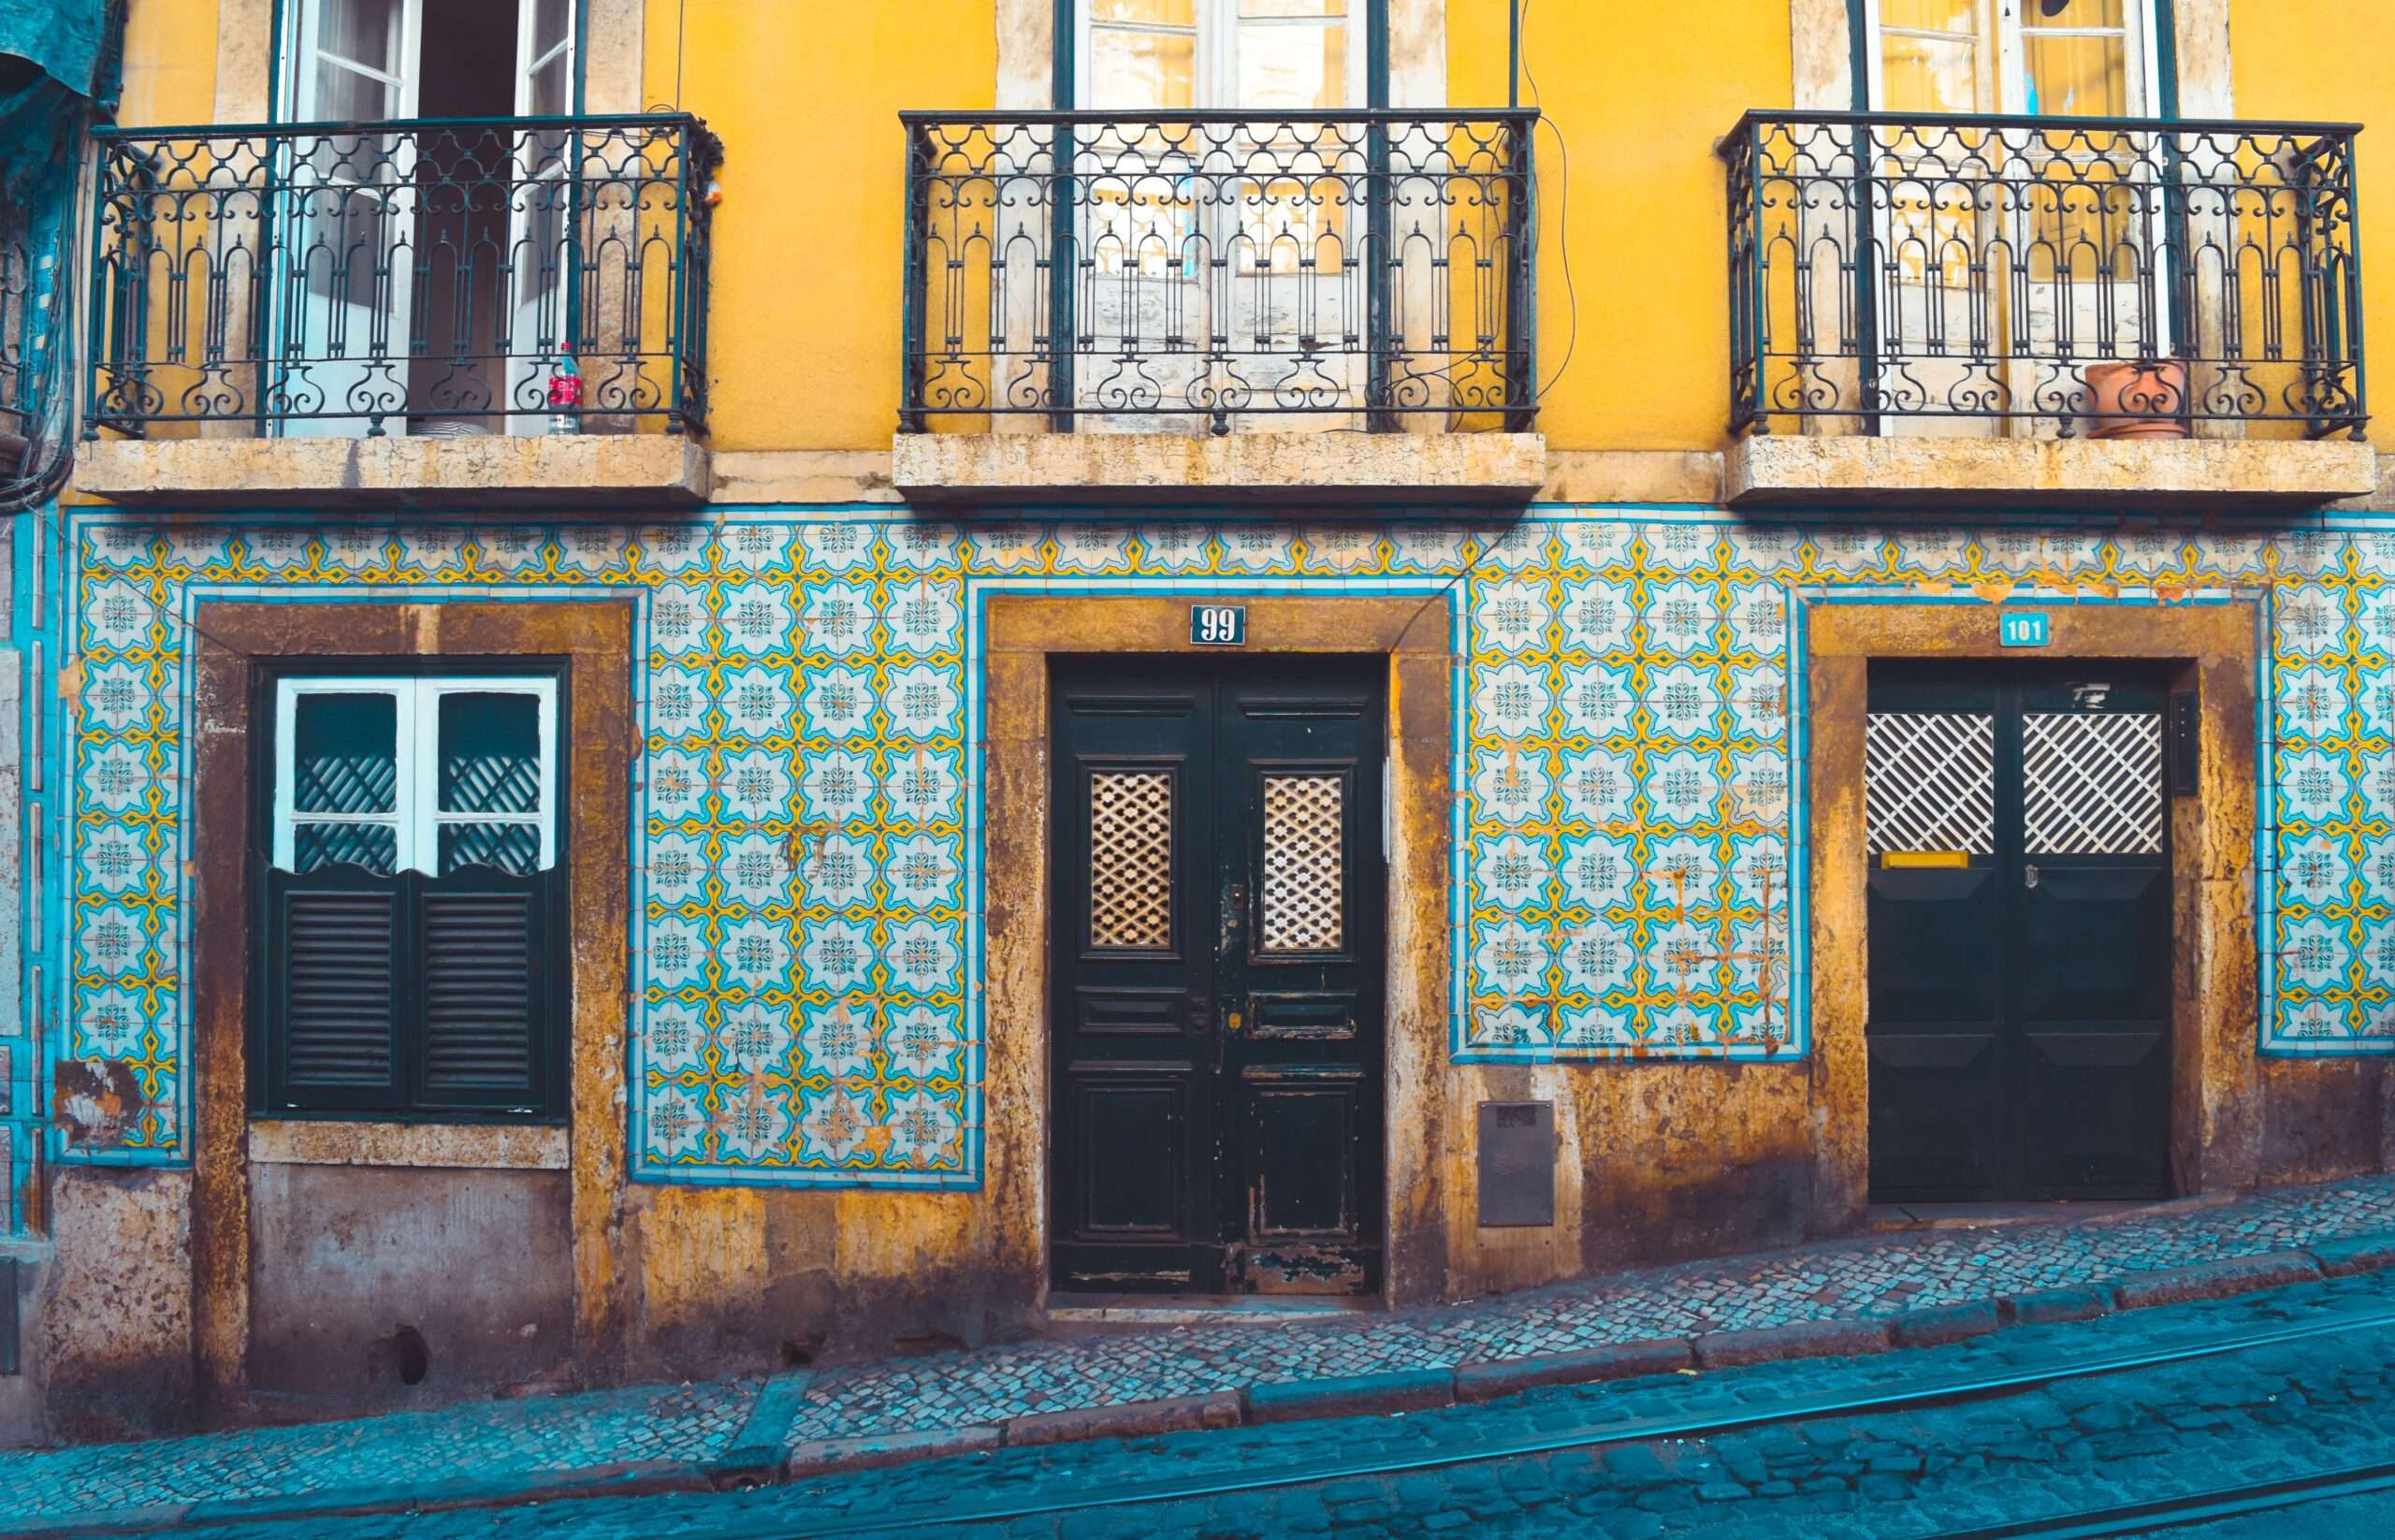 Tiled building facades